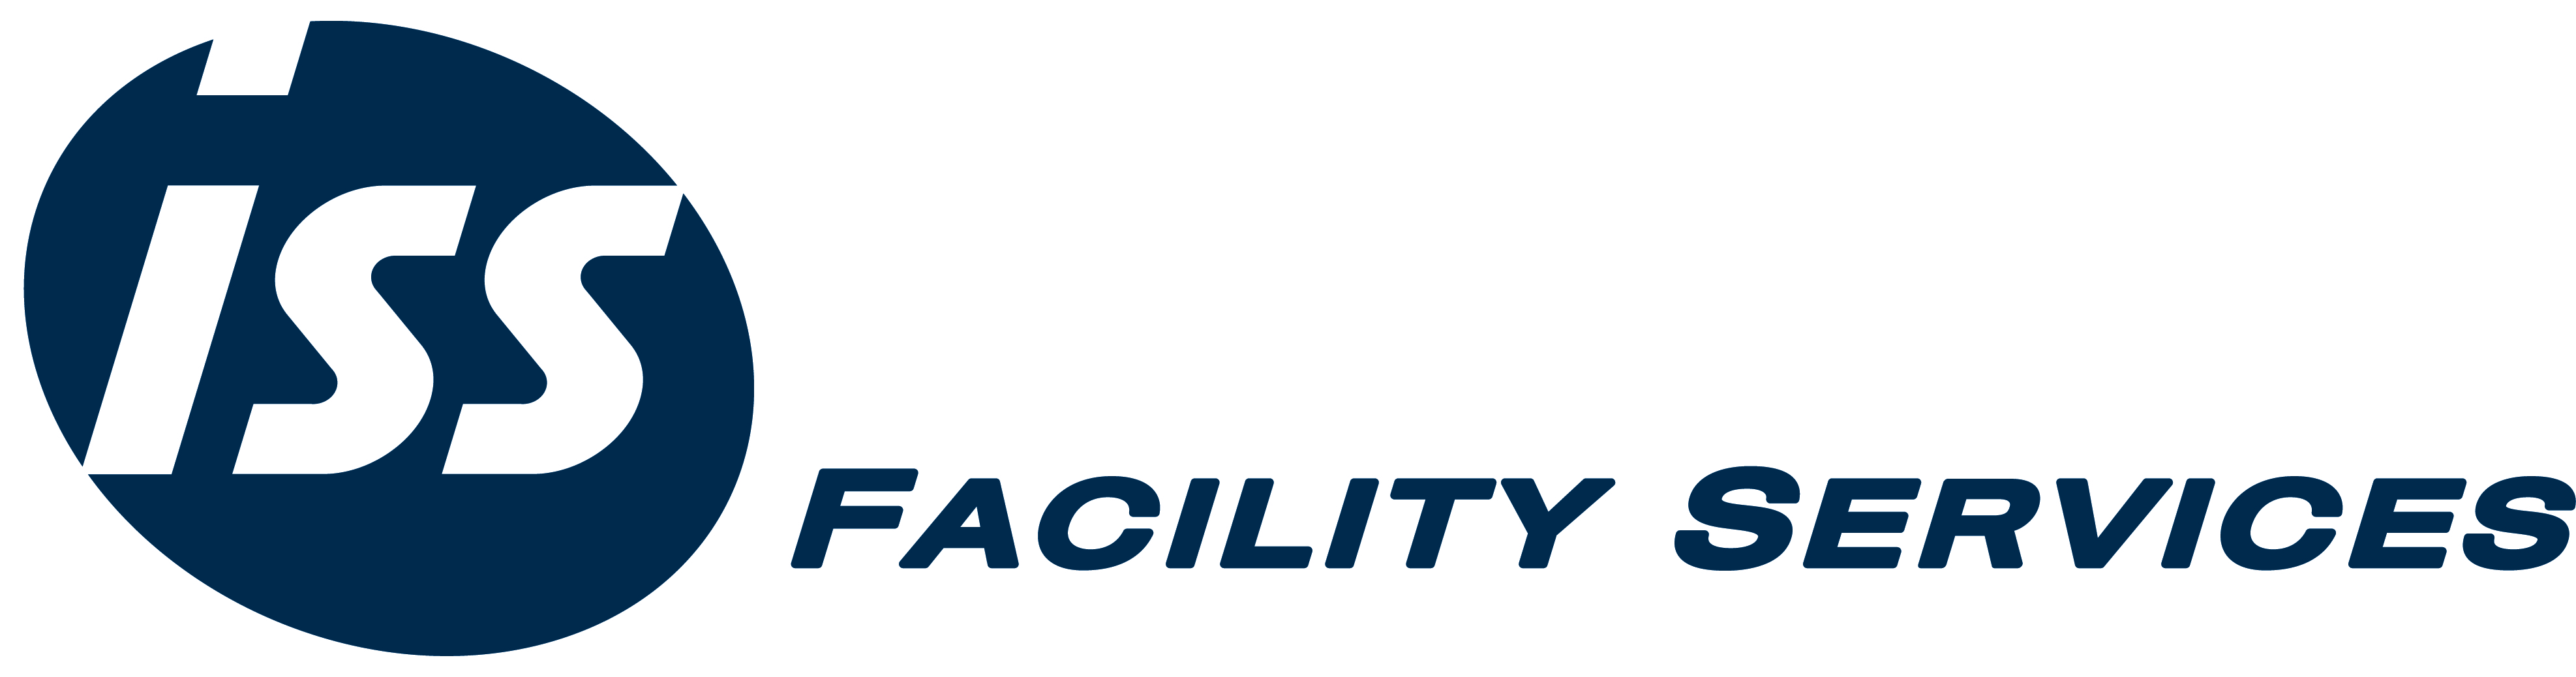 iss facility services 4c 2